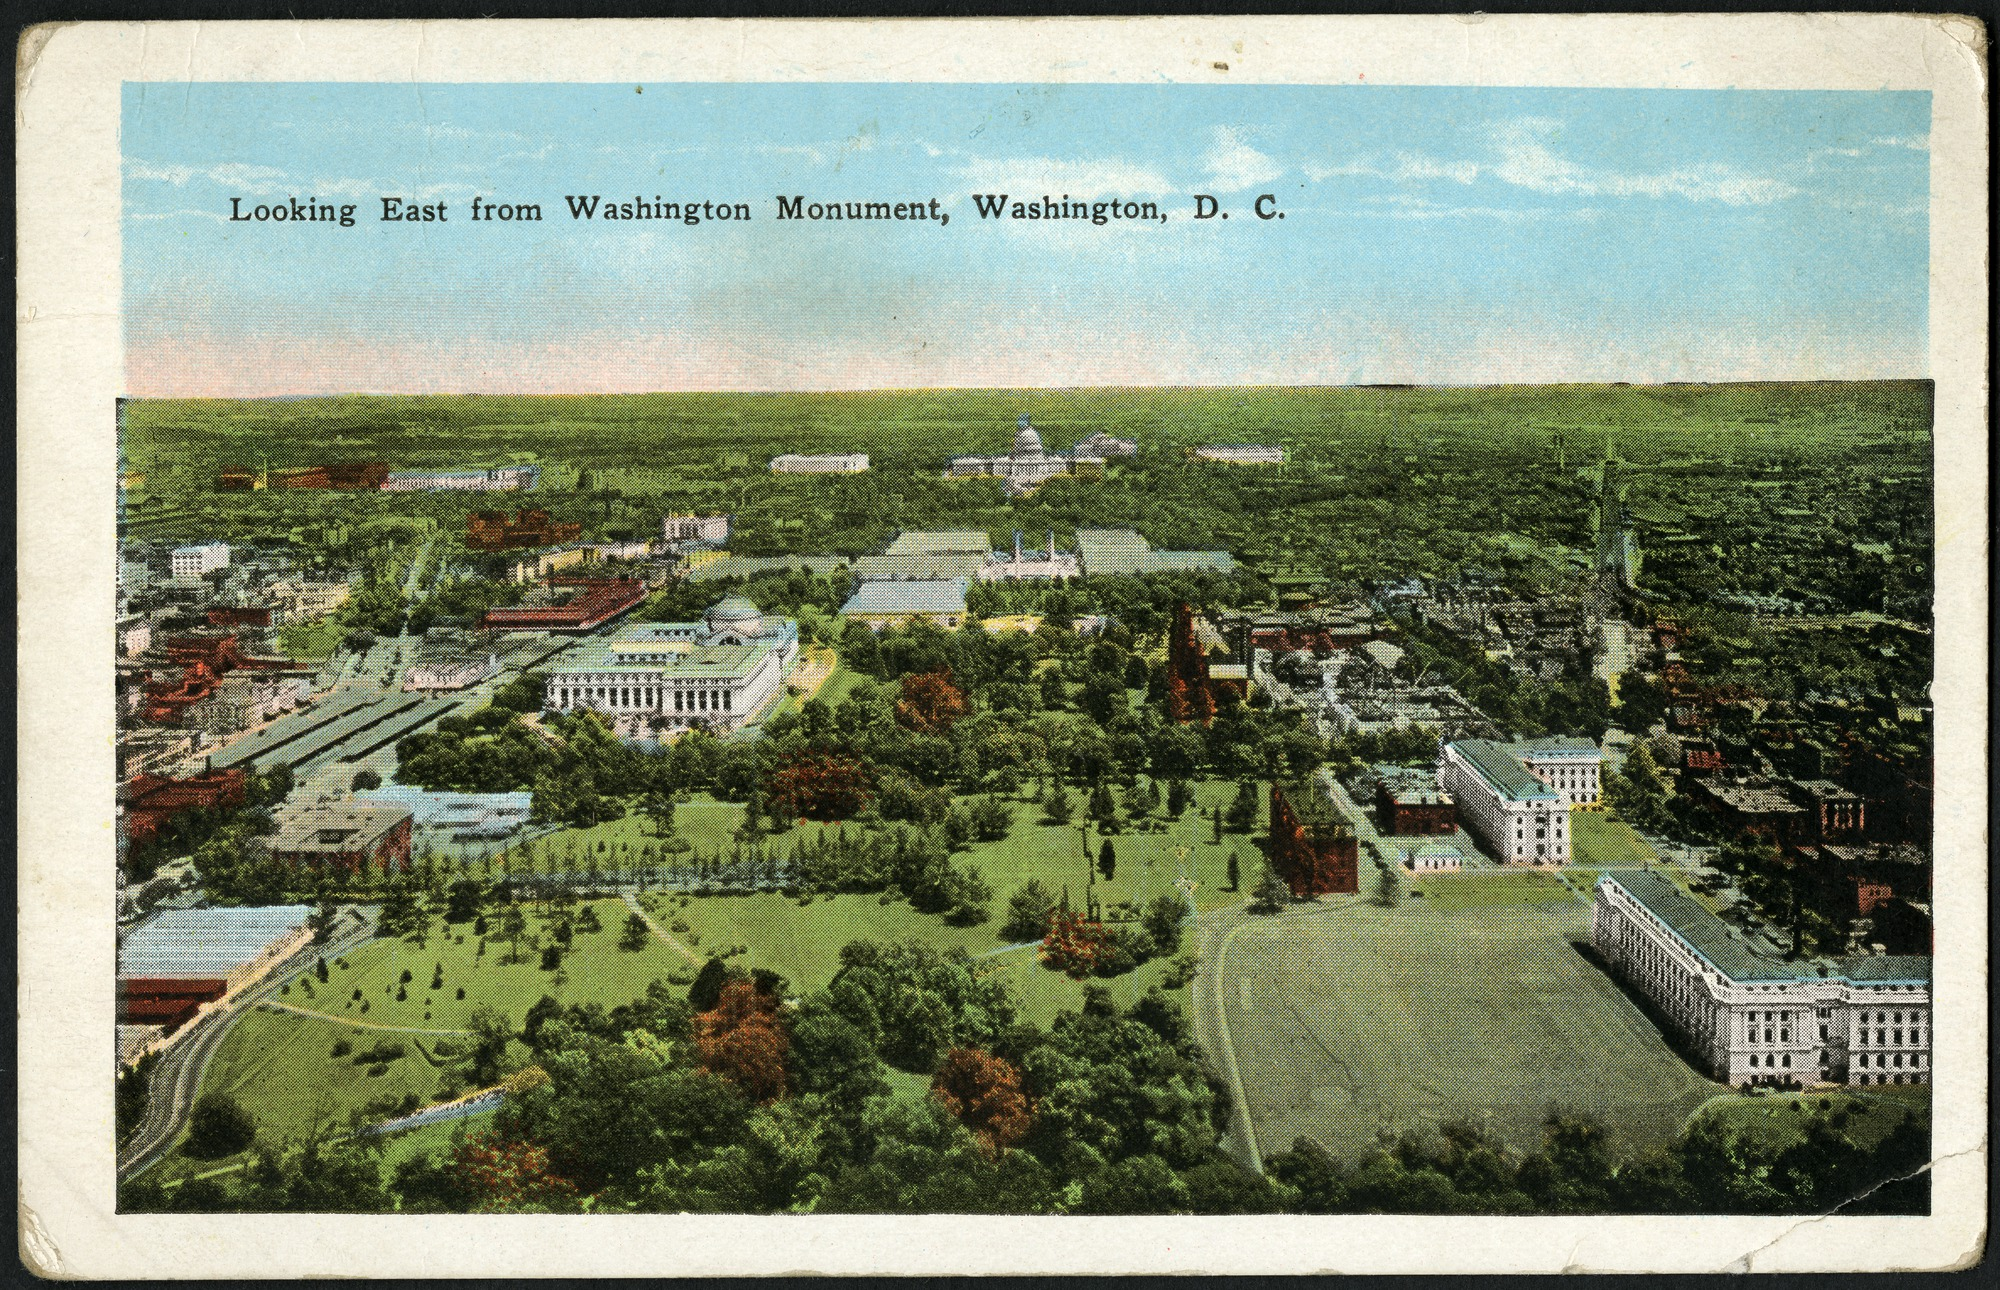 Postcard: Looking East from Washington Monument, c. 1915-1930, Garrison Toy & Novelty Company.